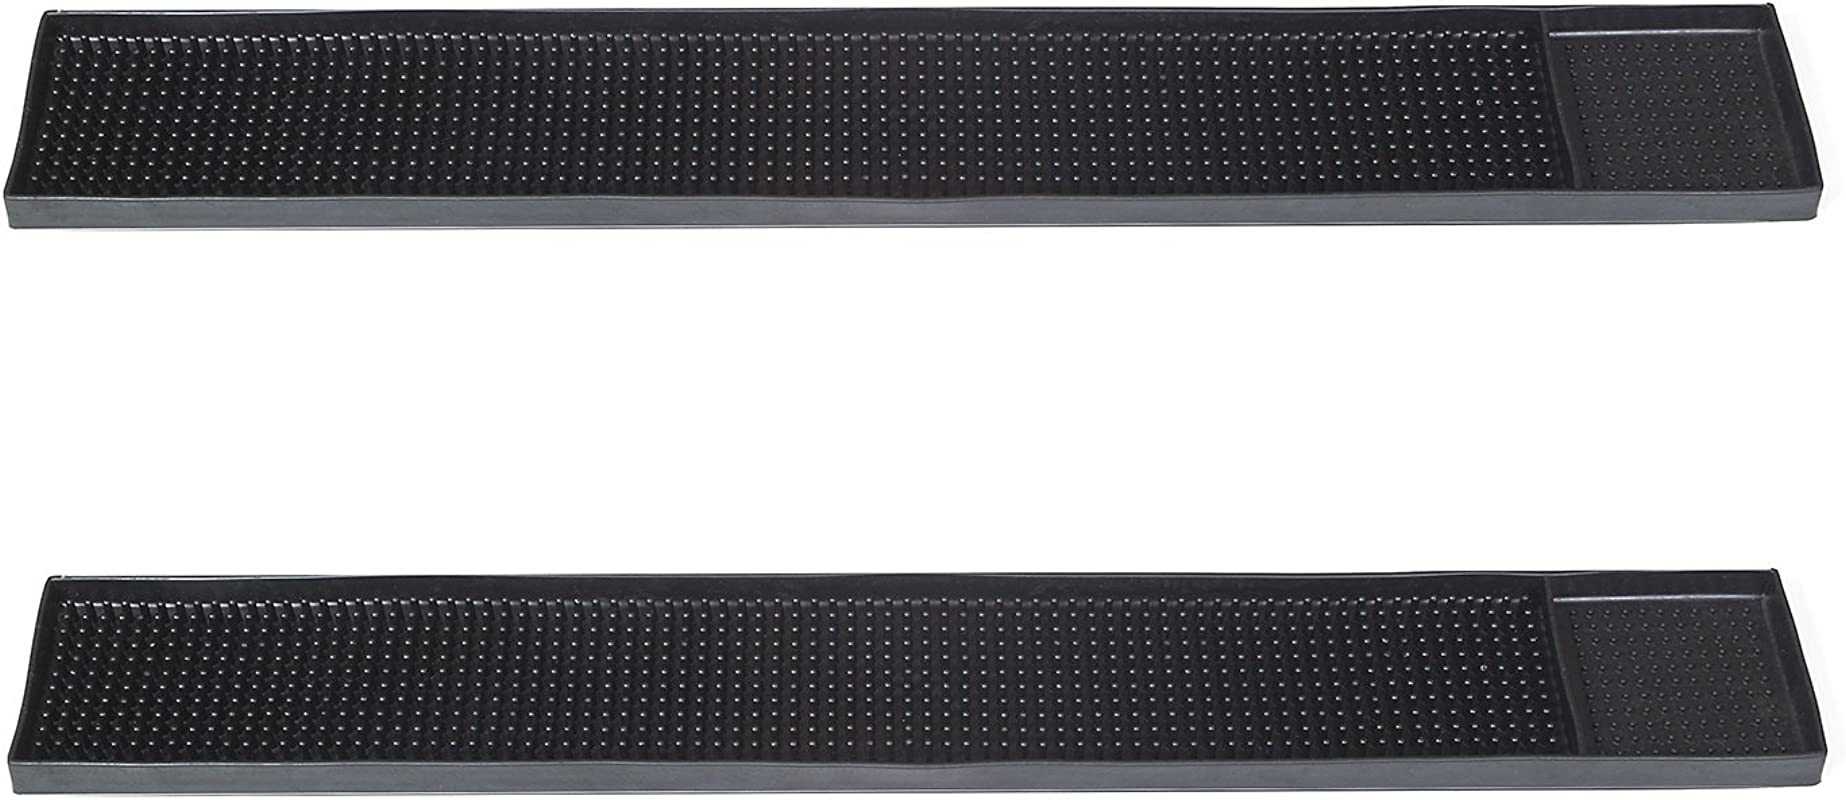 Rubber Bar Mats 2 Mats 23 5x3 25 Inch Professional Bar And Restaurant Service Mat To Protect Your Glass And Serving Area Prevents Water Marks And Spillage Easy To Rinse Black